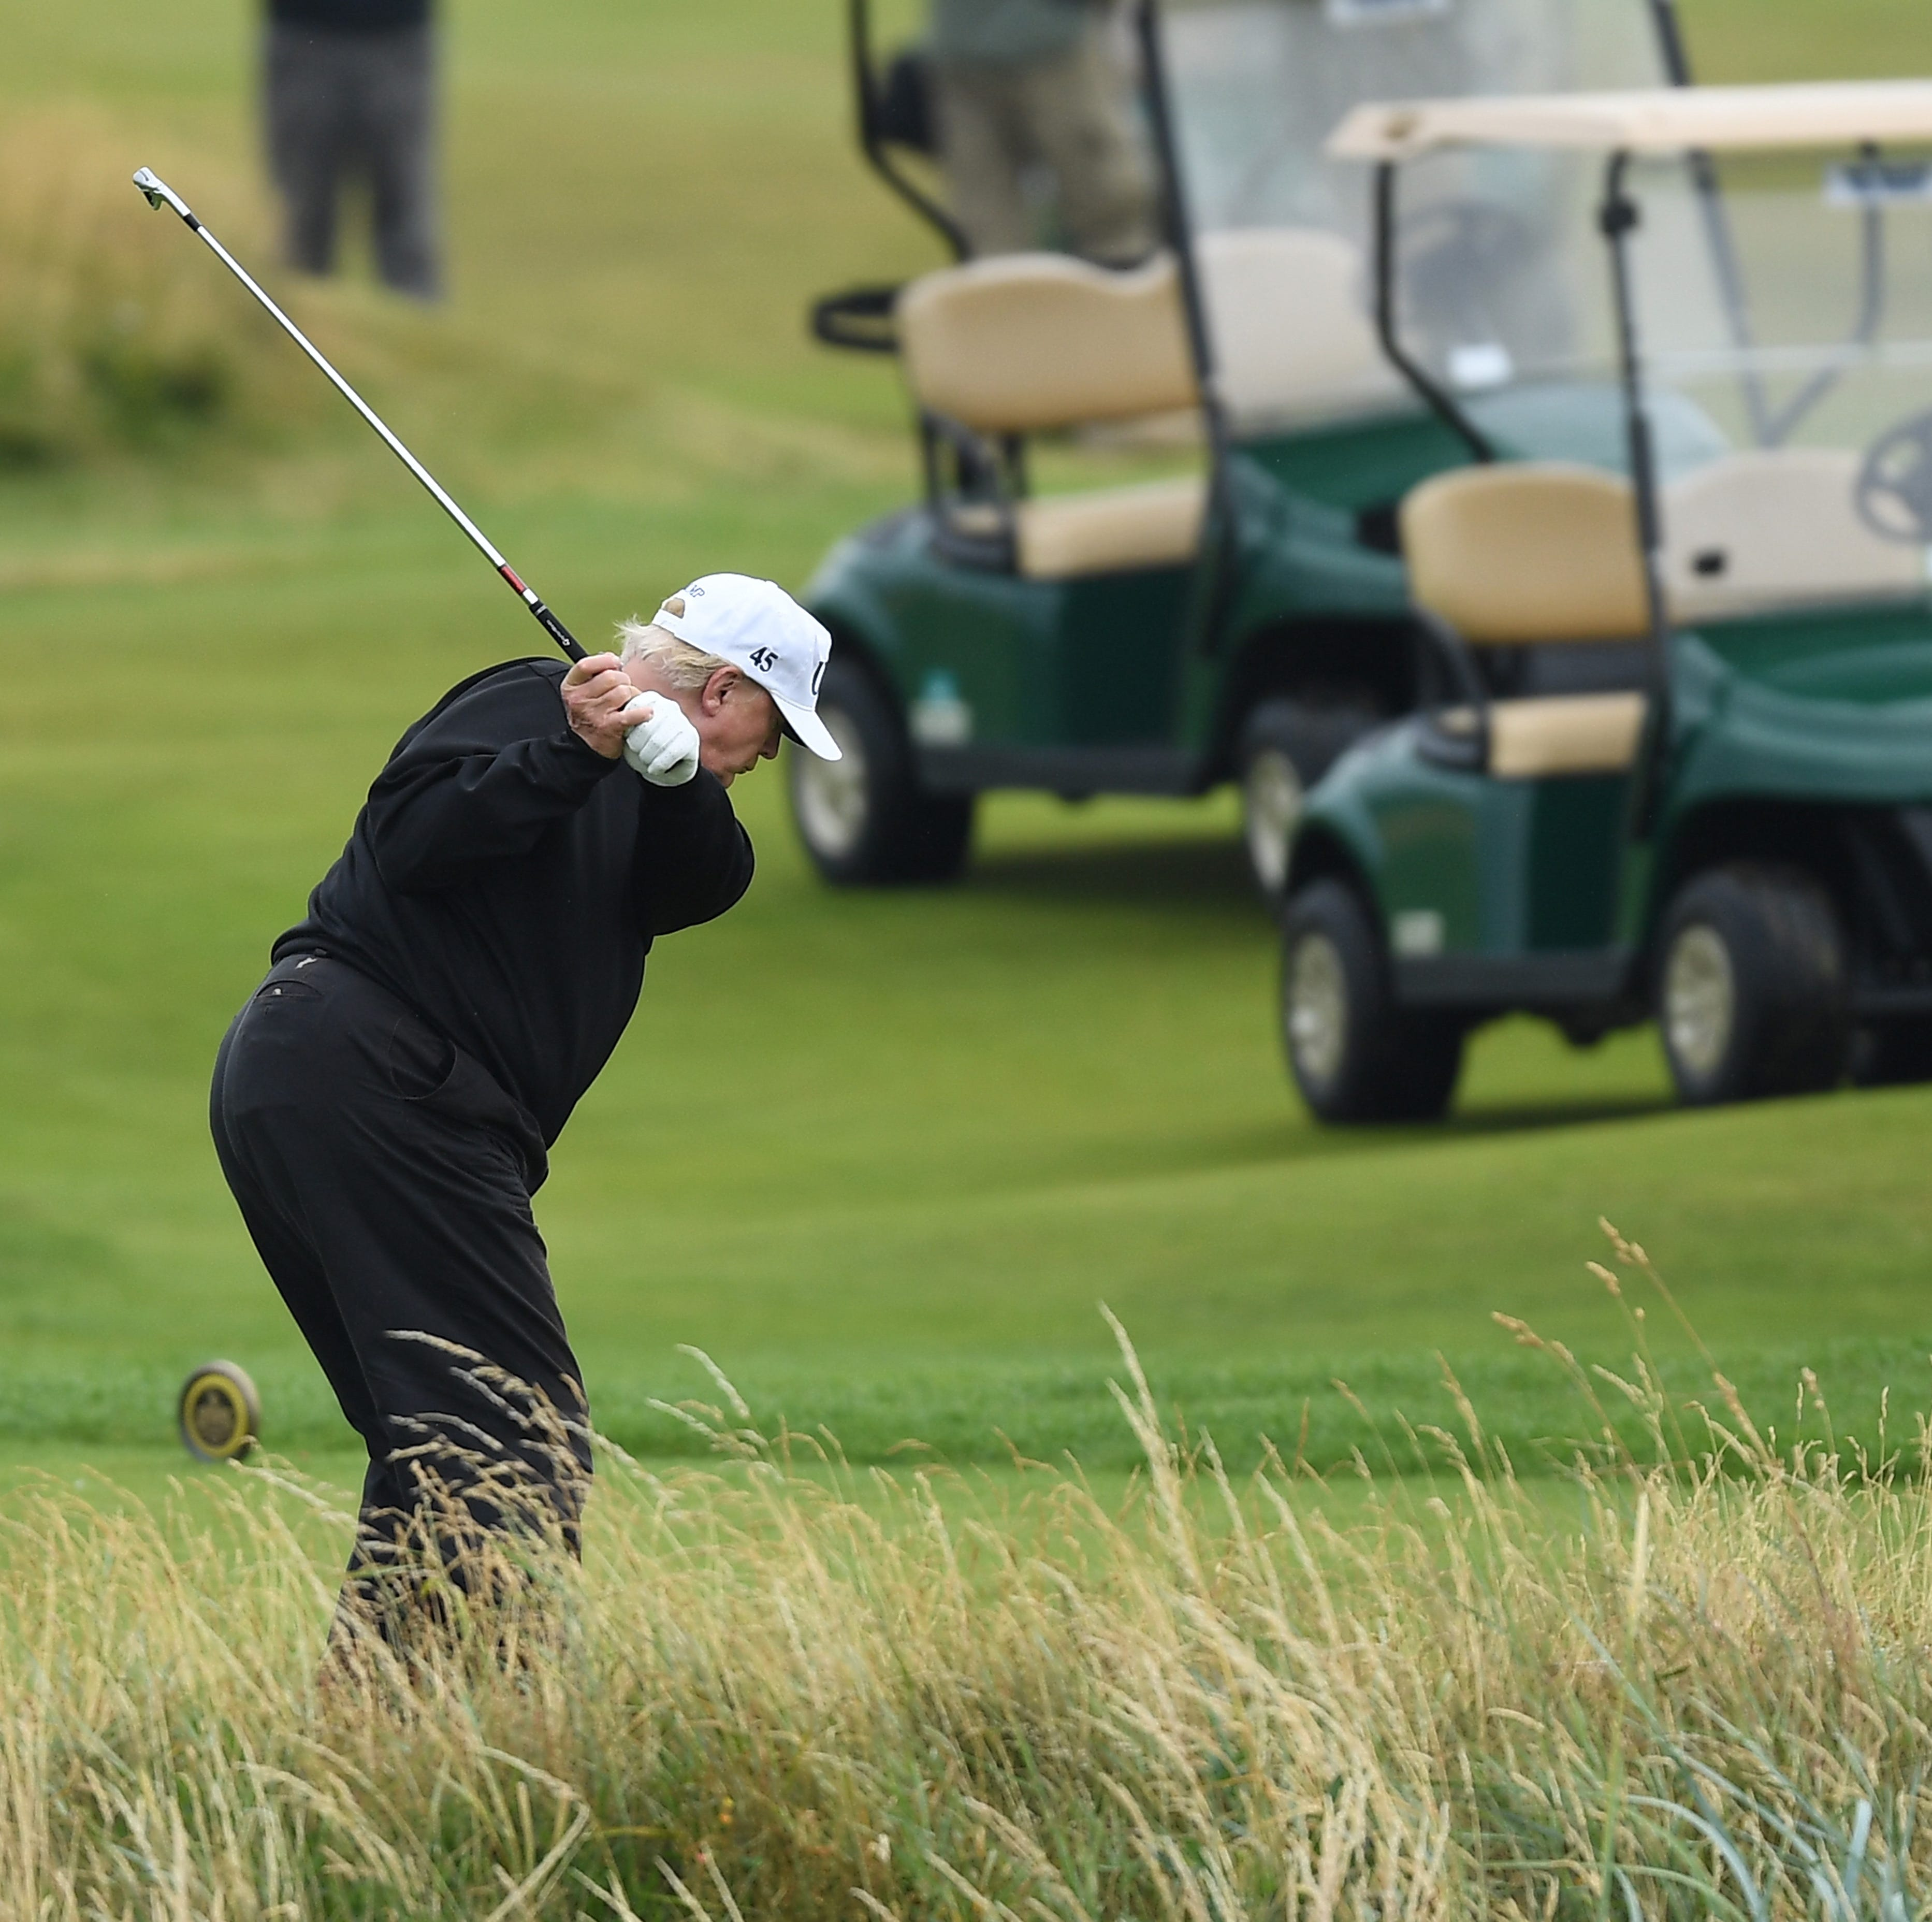 Rick Reilly says President Trump cheats at golf, and the writer is really angry about it